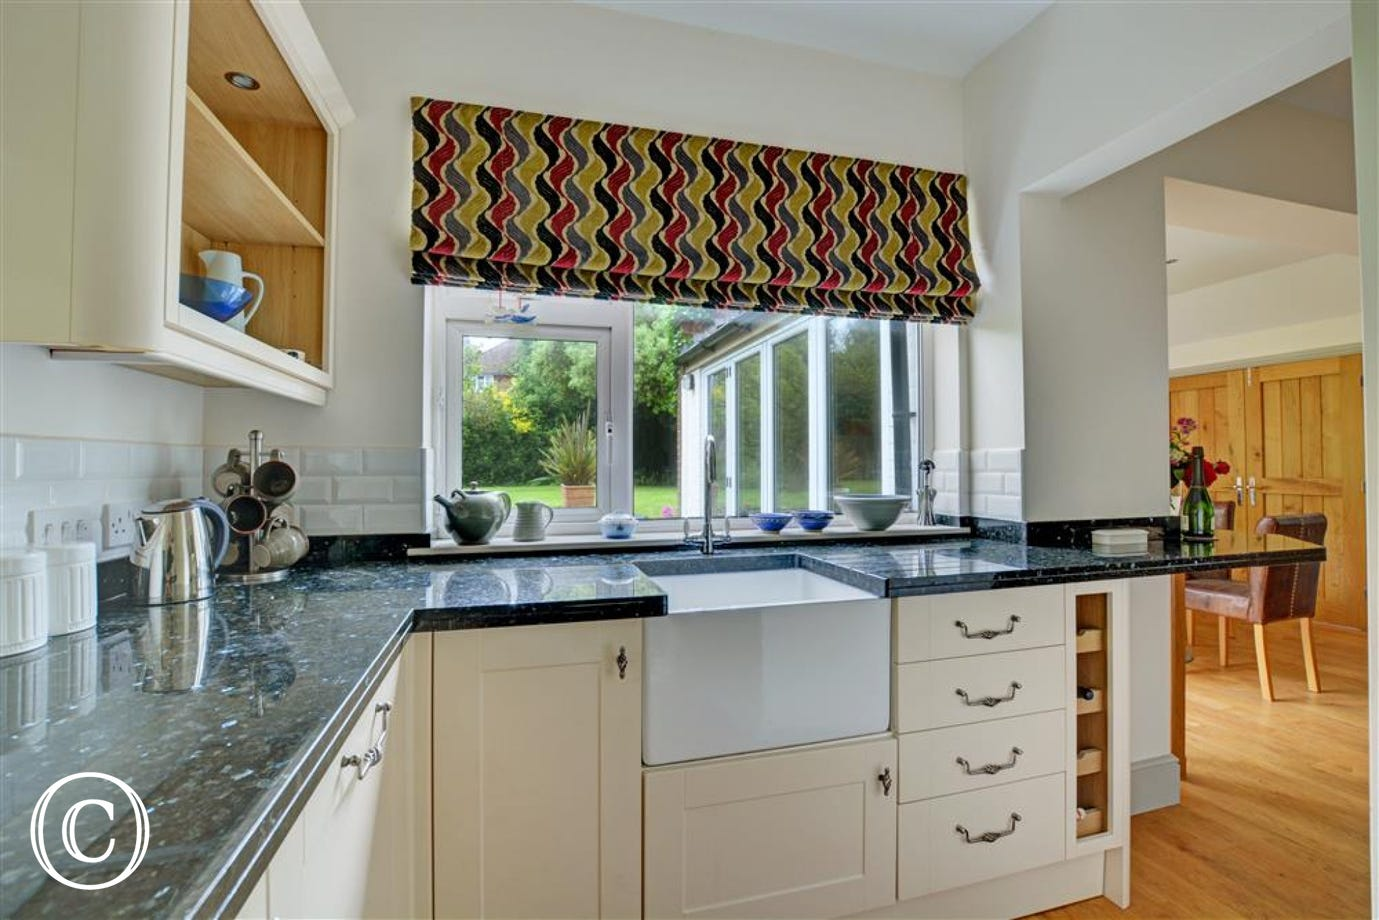 The kitchen has an electric double oven and gas hob